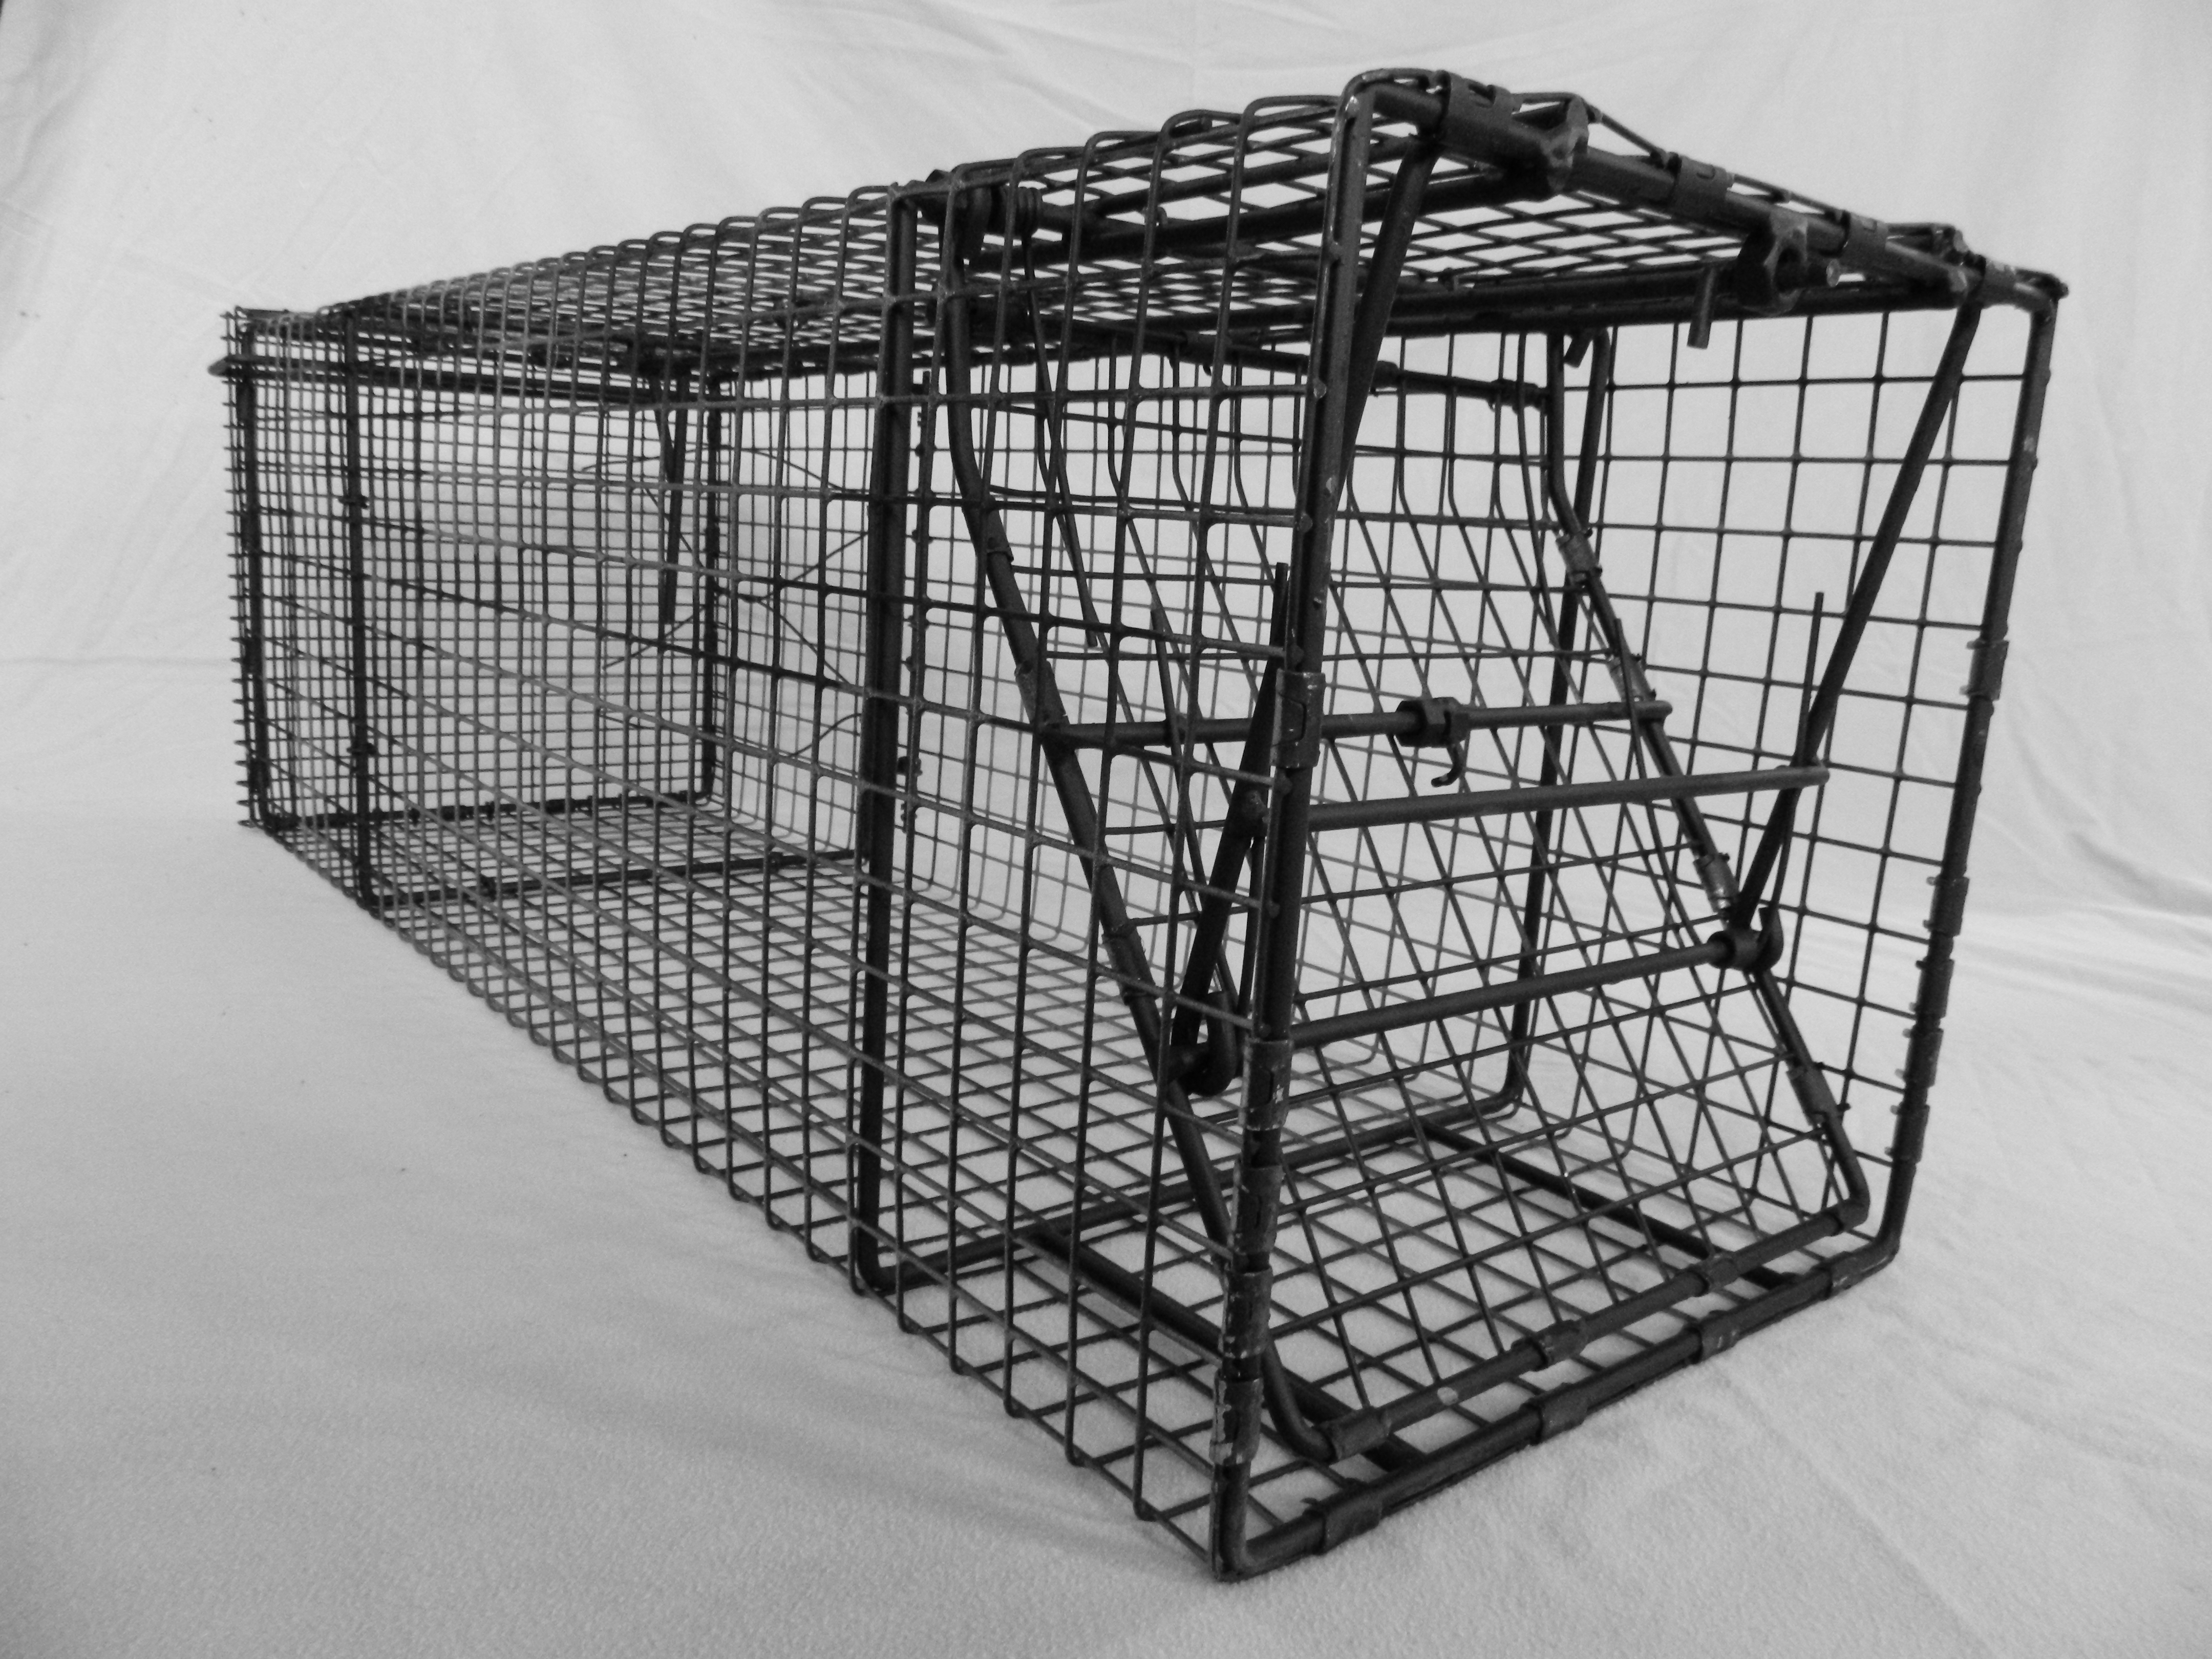 Home / 12x12 / Comstock Wire Triggered (Pan-less) Single Door Trap & Comstock Wire Triggered (Pan-less) Single Door Trap - Comstock ...